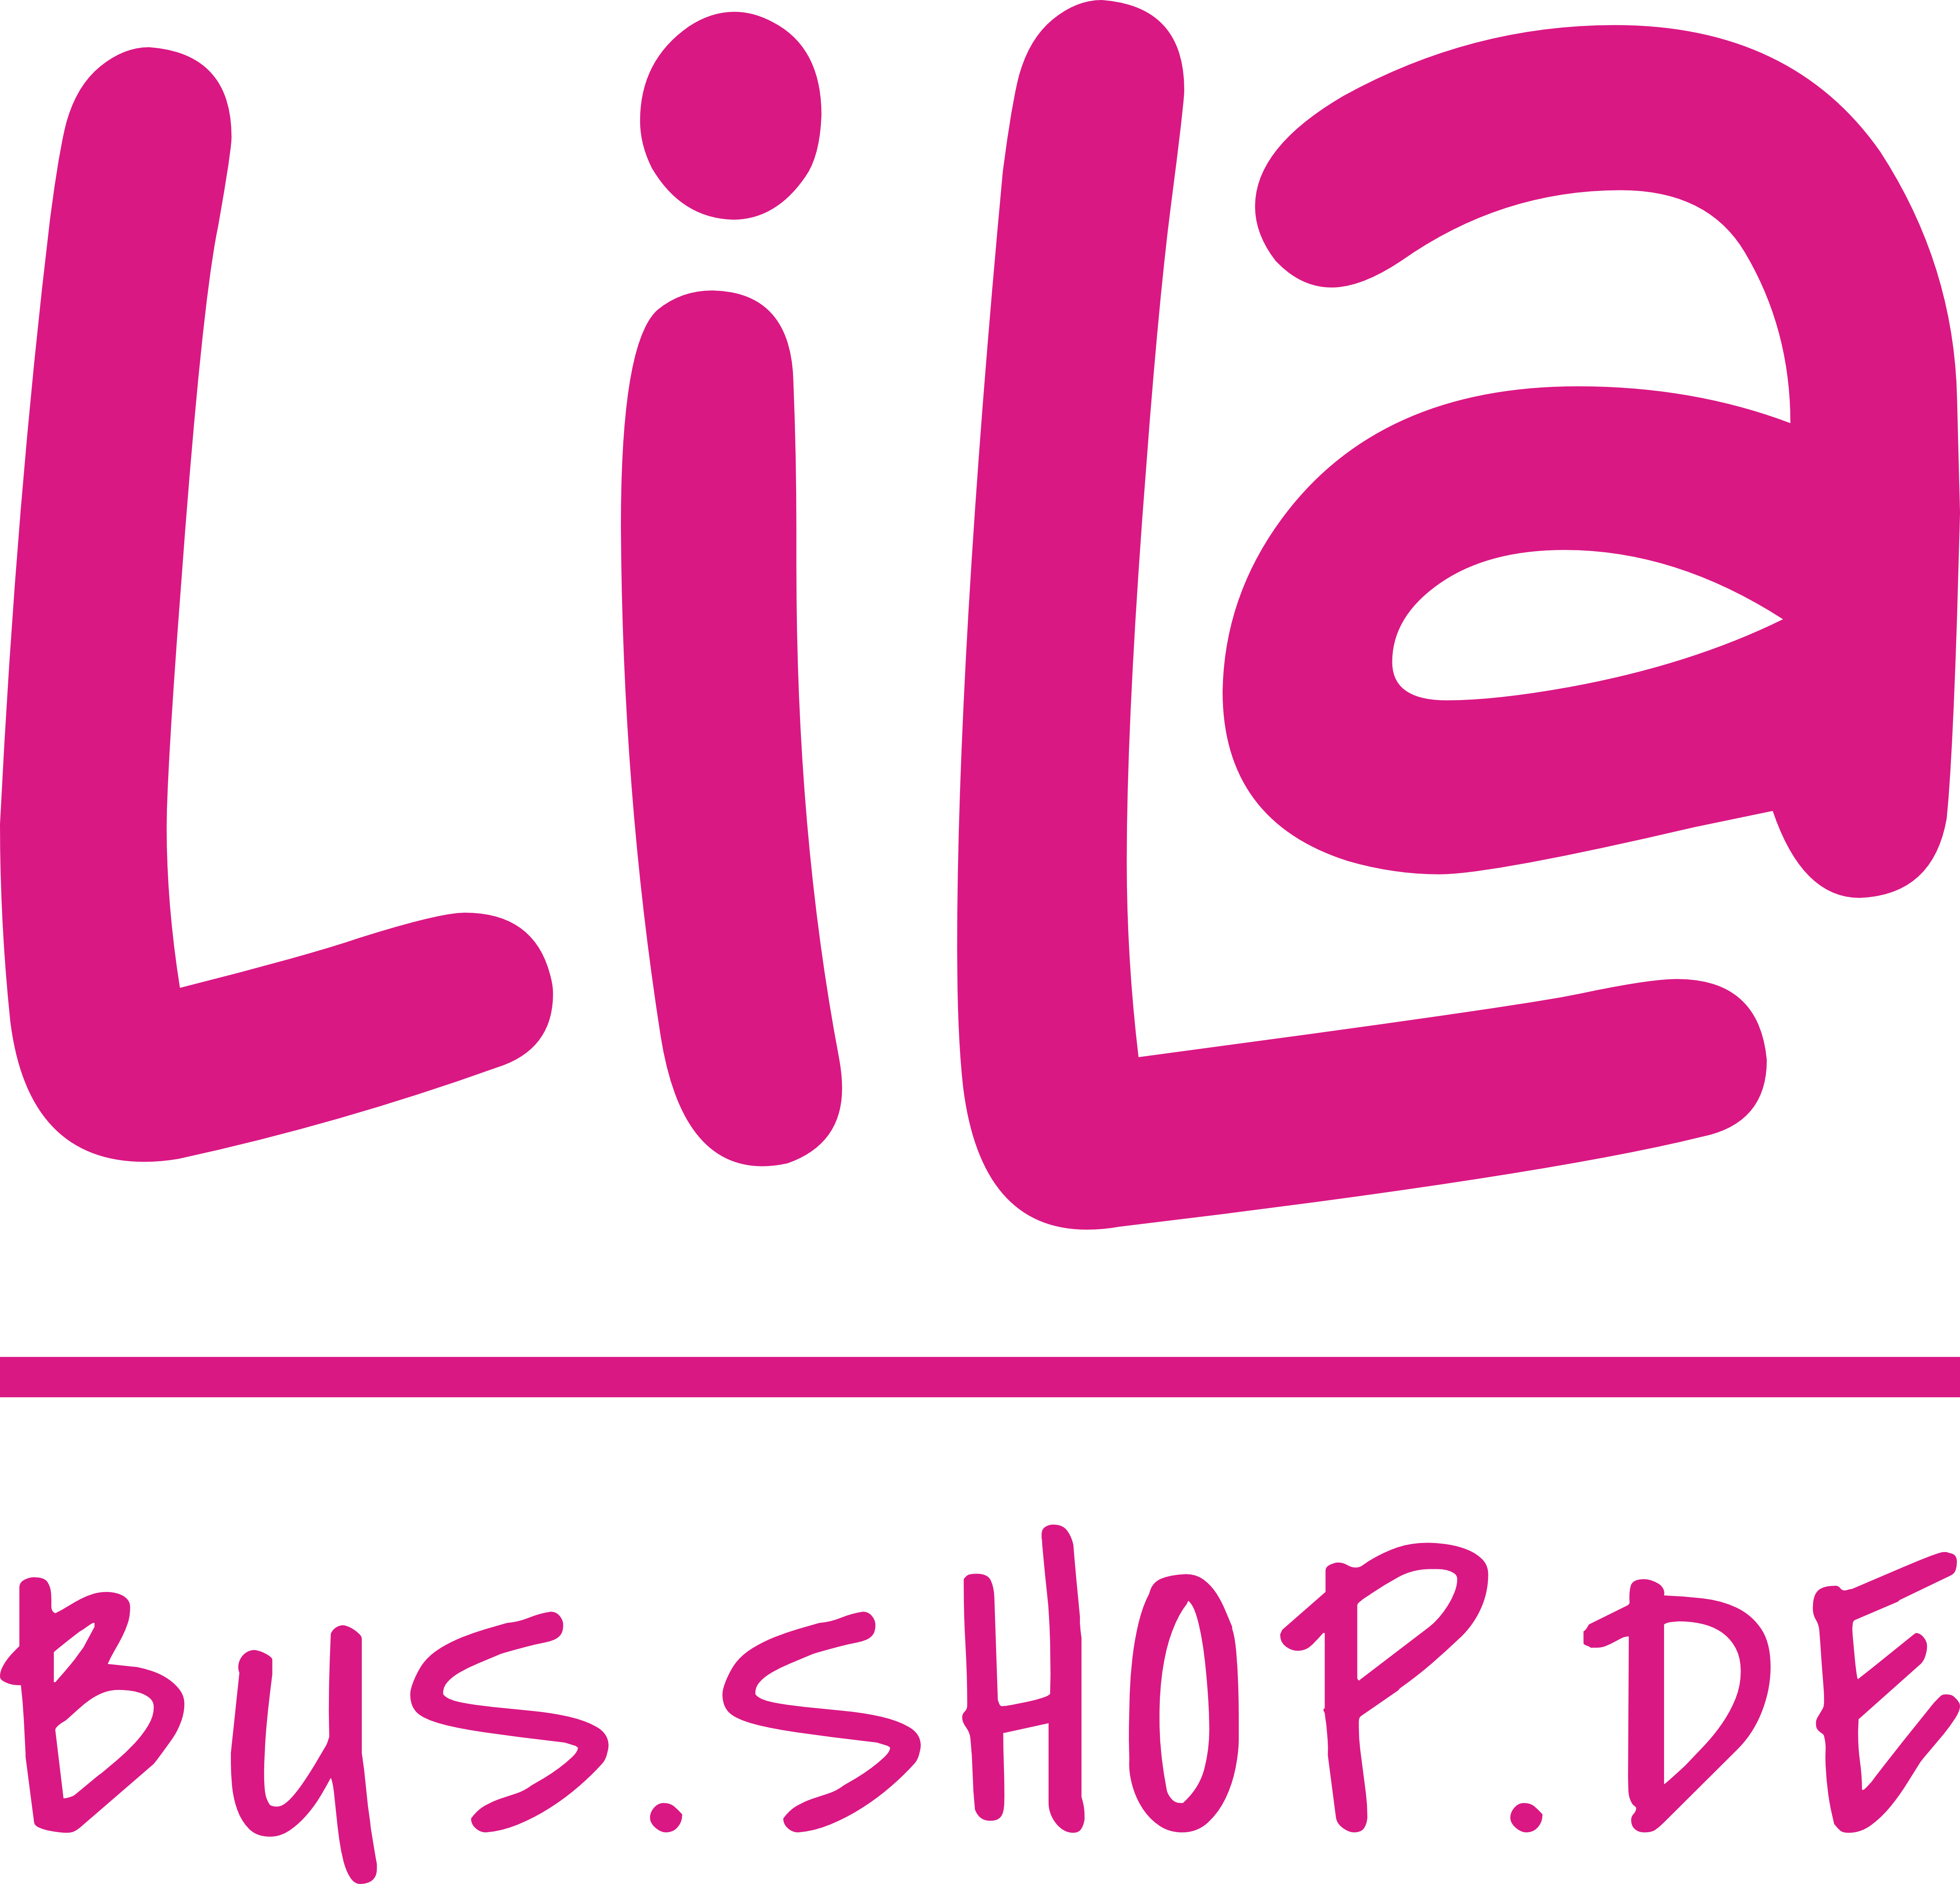 lila-bus-shop.de-Logo